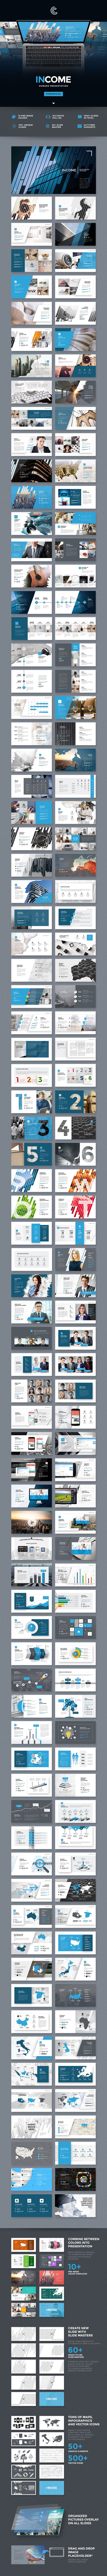 Income PowerPoint - PowerPoint Templates Presentation Templates